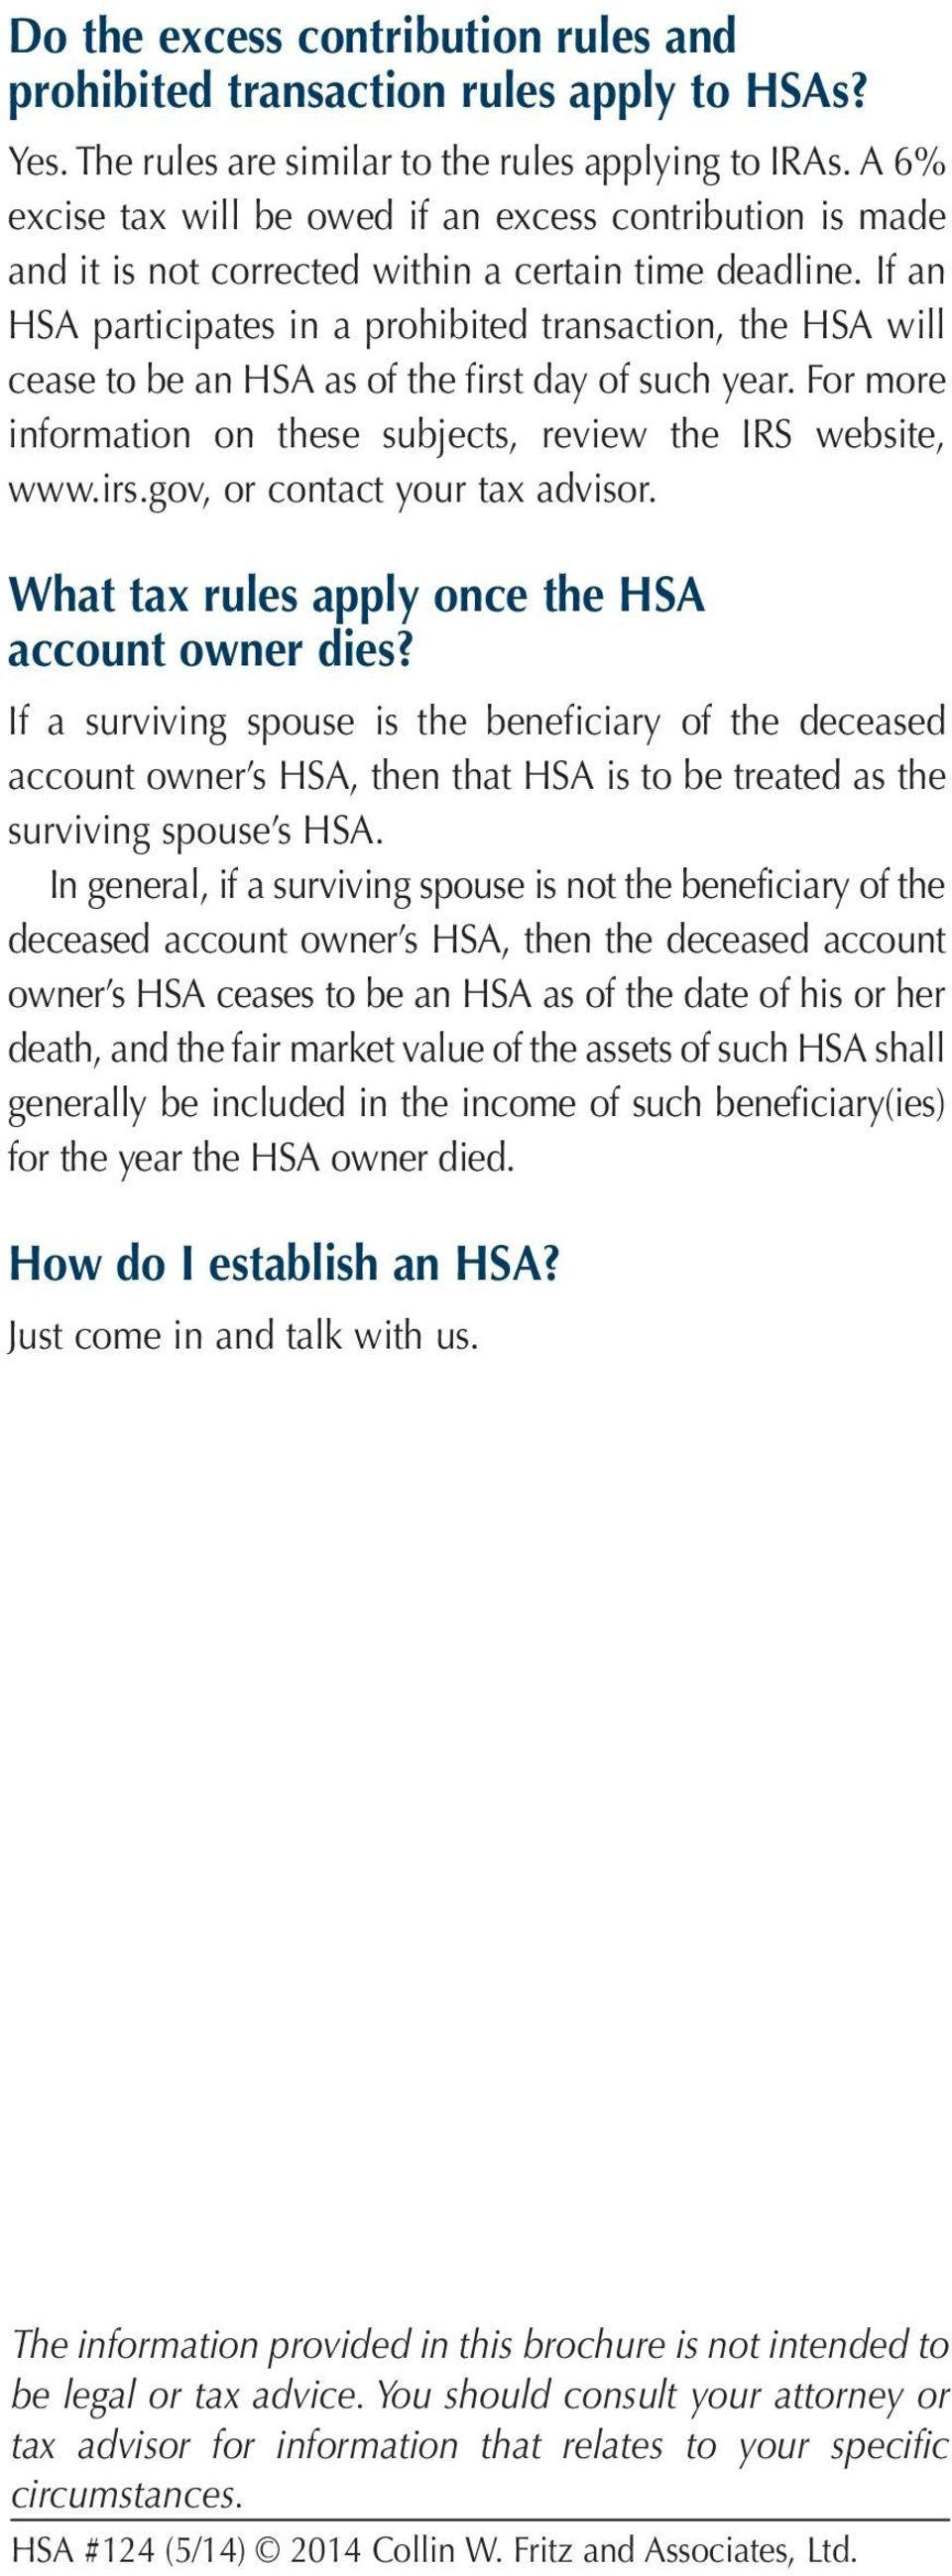 If an HSA participates in a prohibited transaction, the HSA will cease to be an HSA as of the first day of such year. For more information on these subjects, review the IRS website, www.irs.gov, or contact your tax advisor.